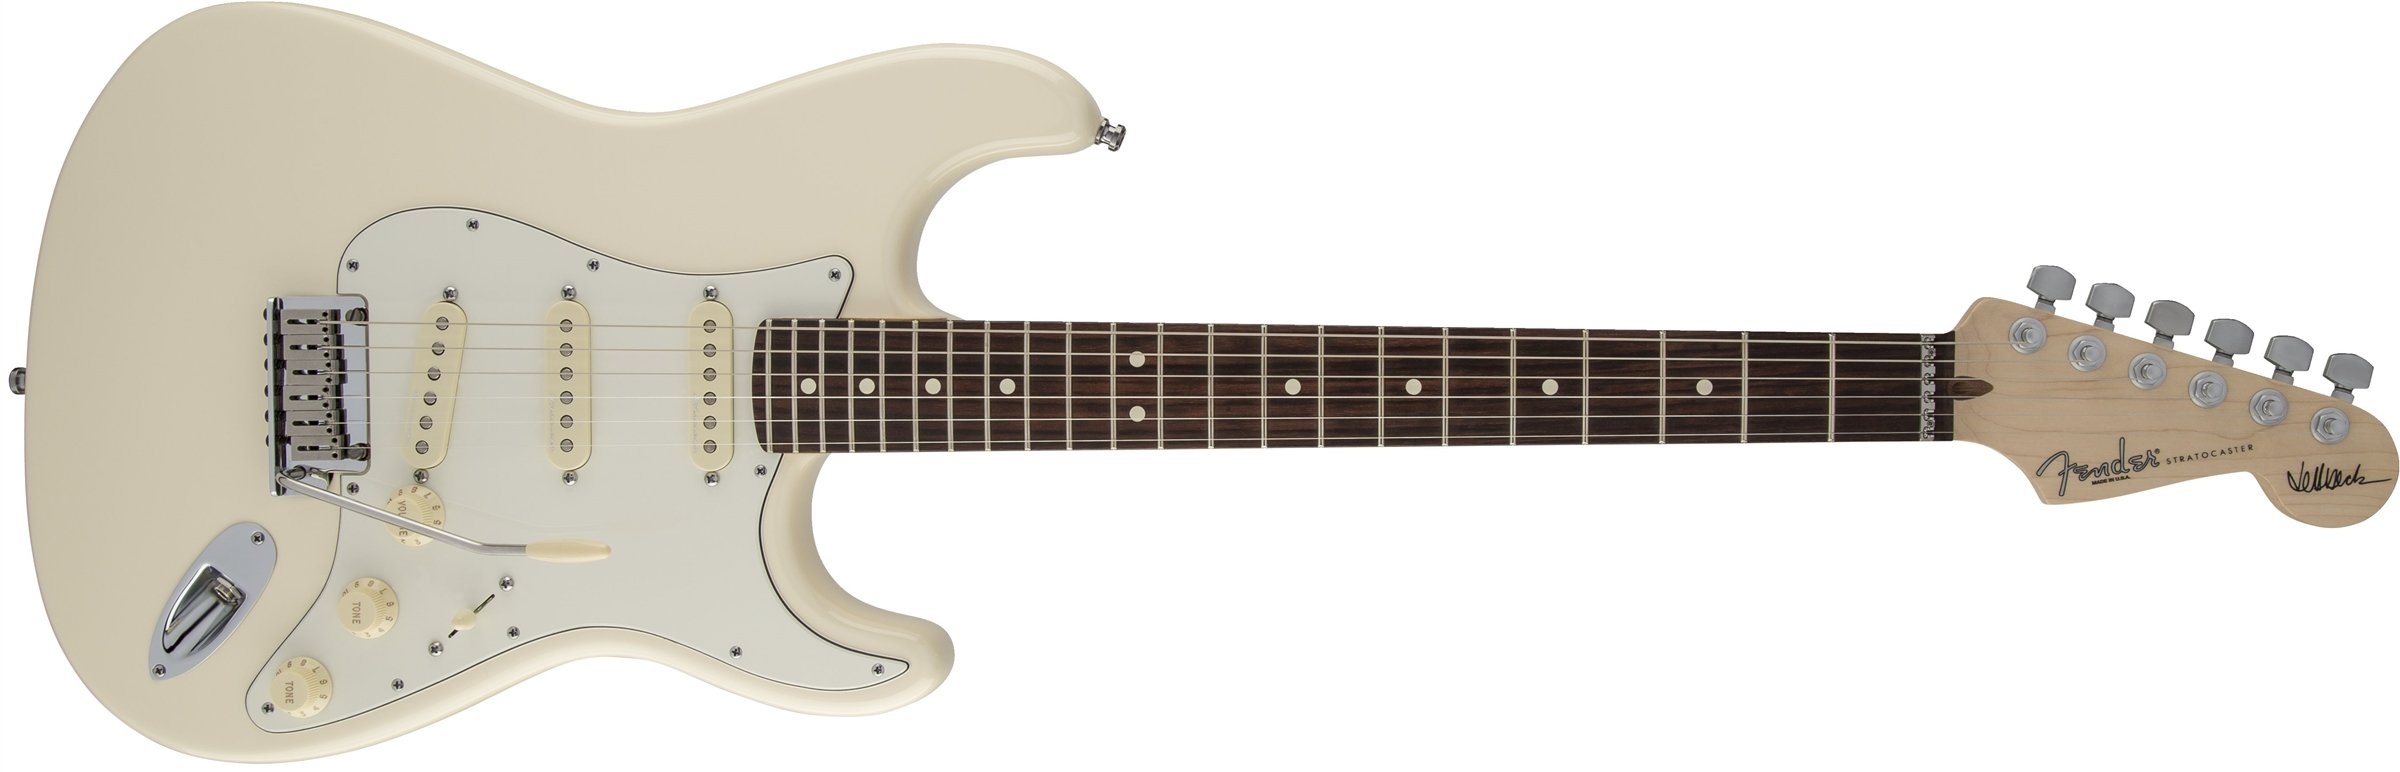 Cheap Fender Jeff Beck Stratocaster Electric Guitar Rosewood Fingerboard - Olympic White Black Friday & Cyber Monday 2019